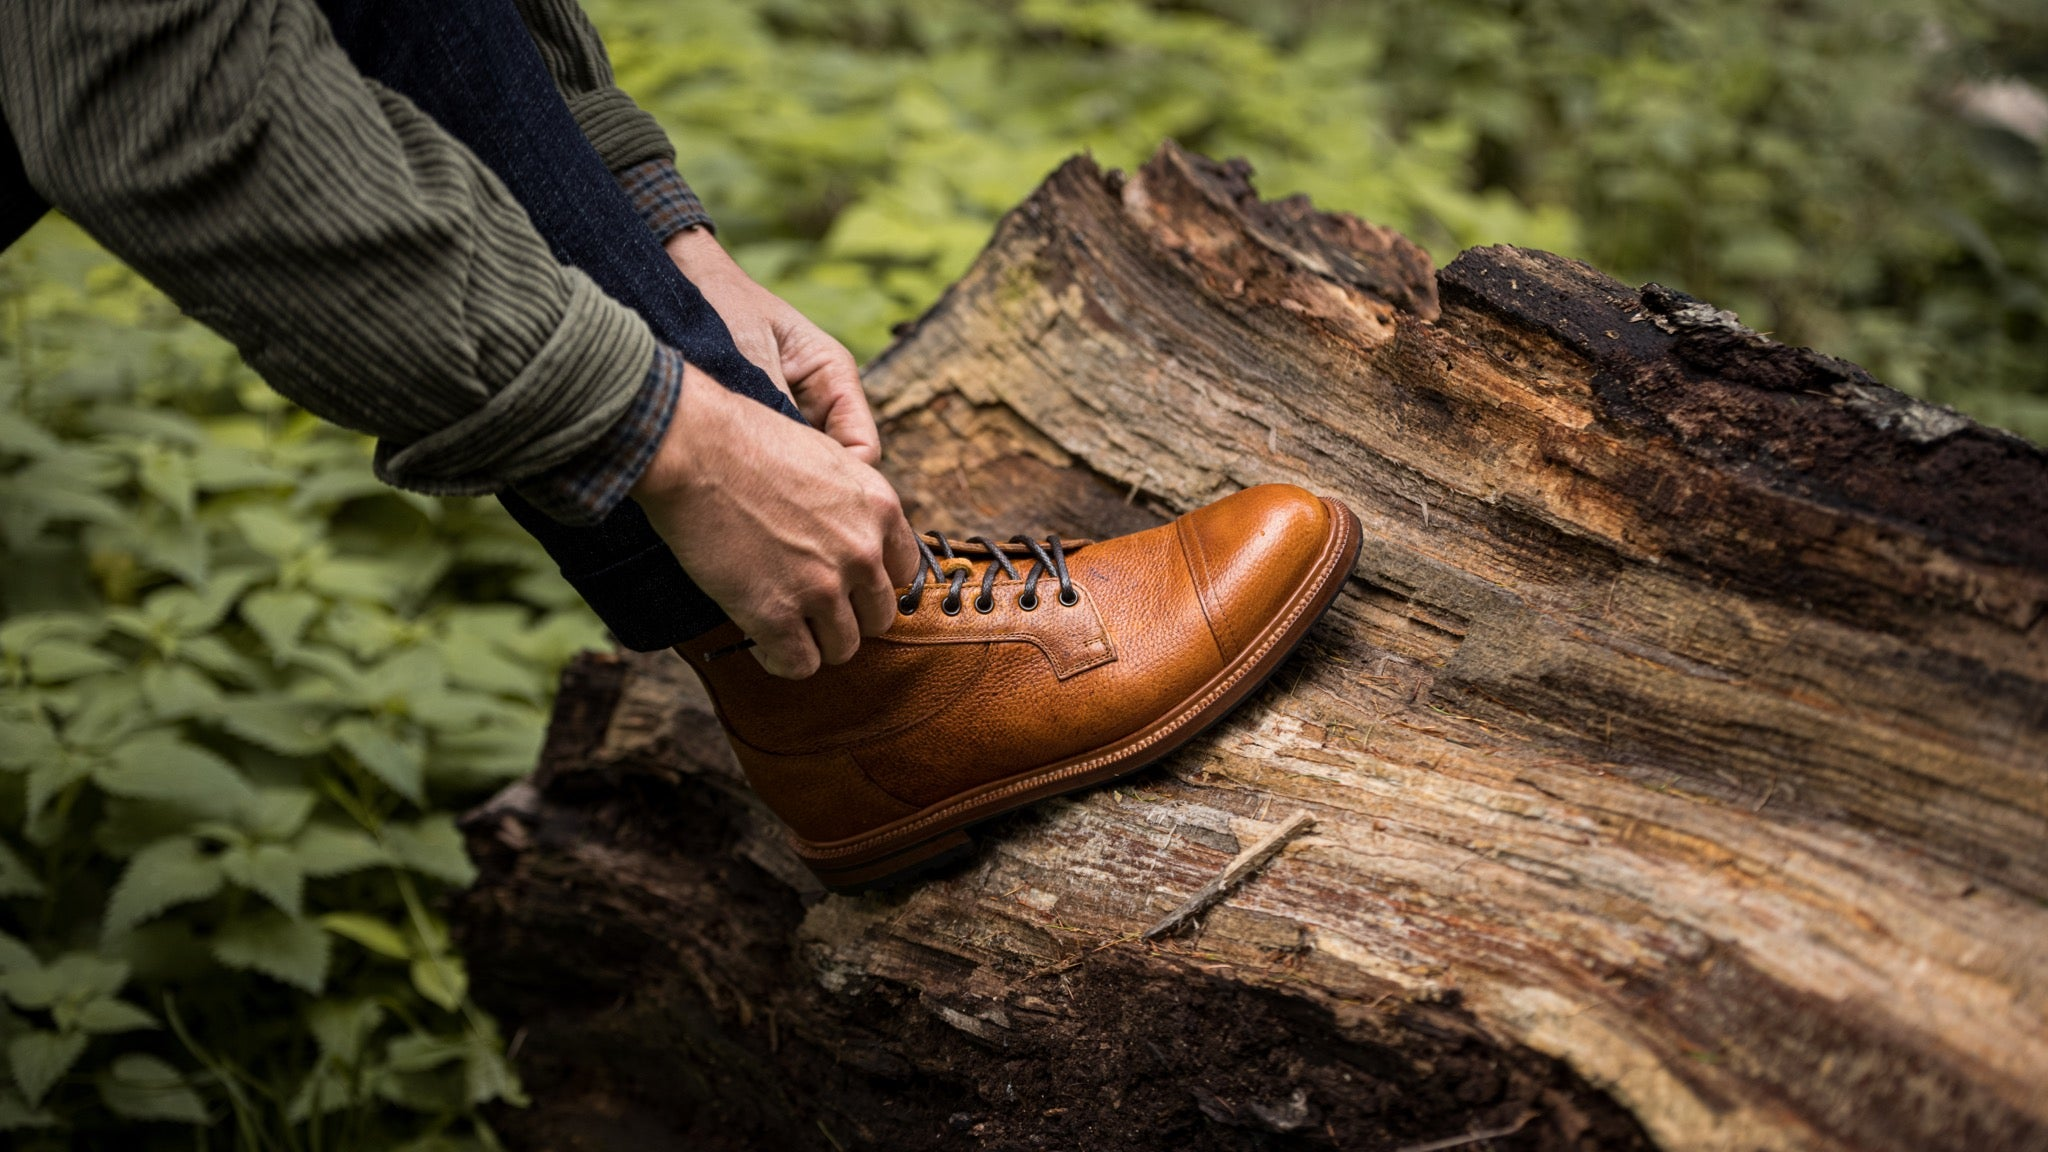 A pair of boots perfect for a hike in the country side by Velasca.